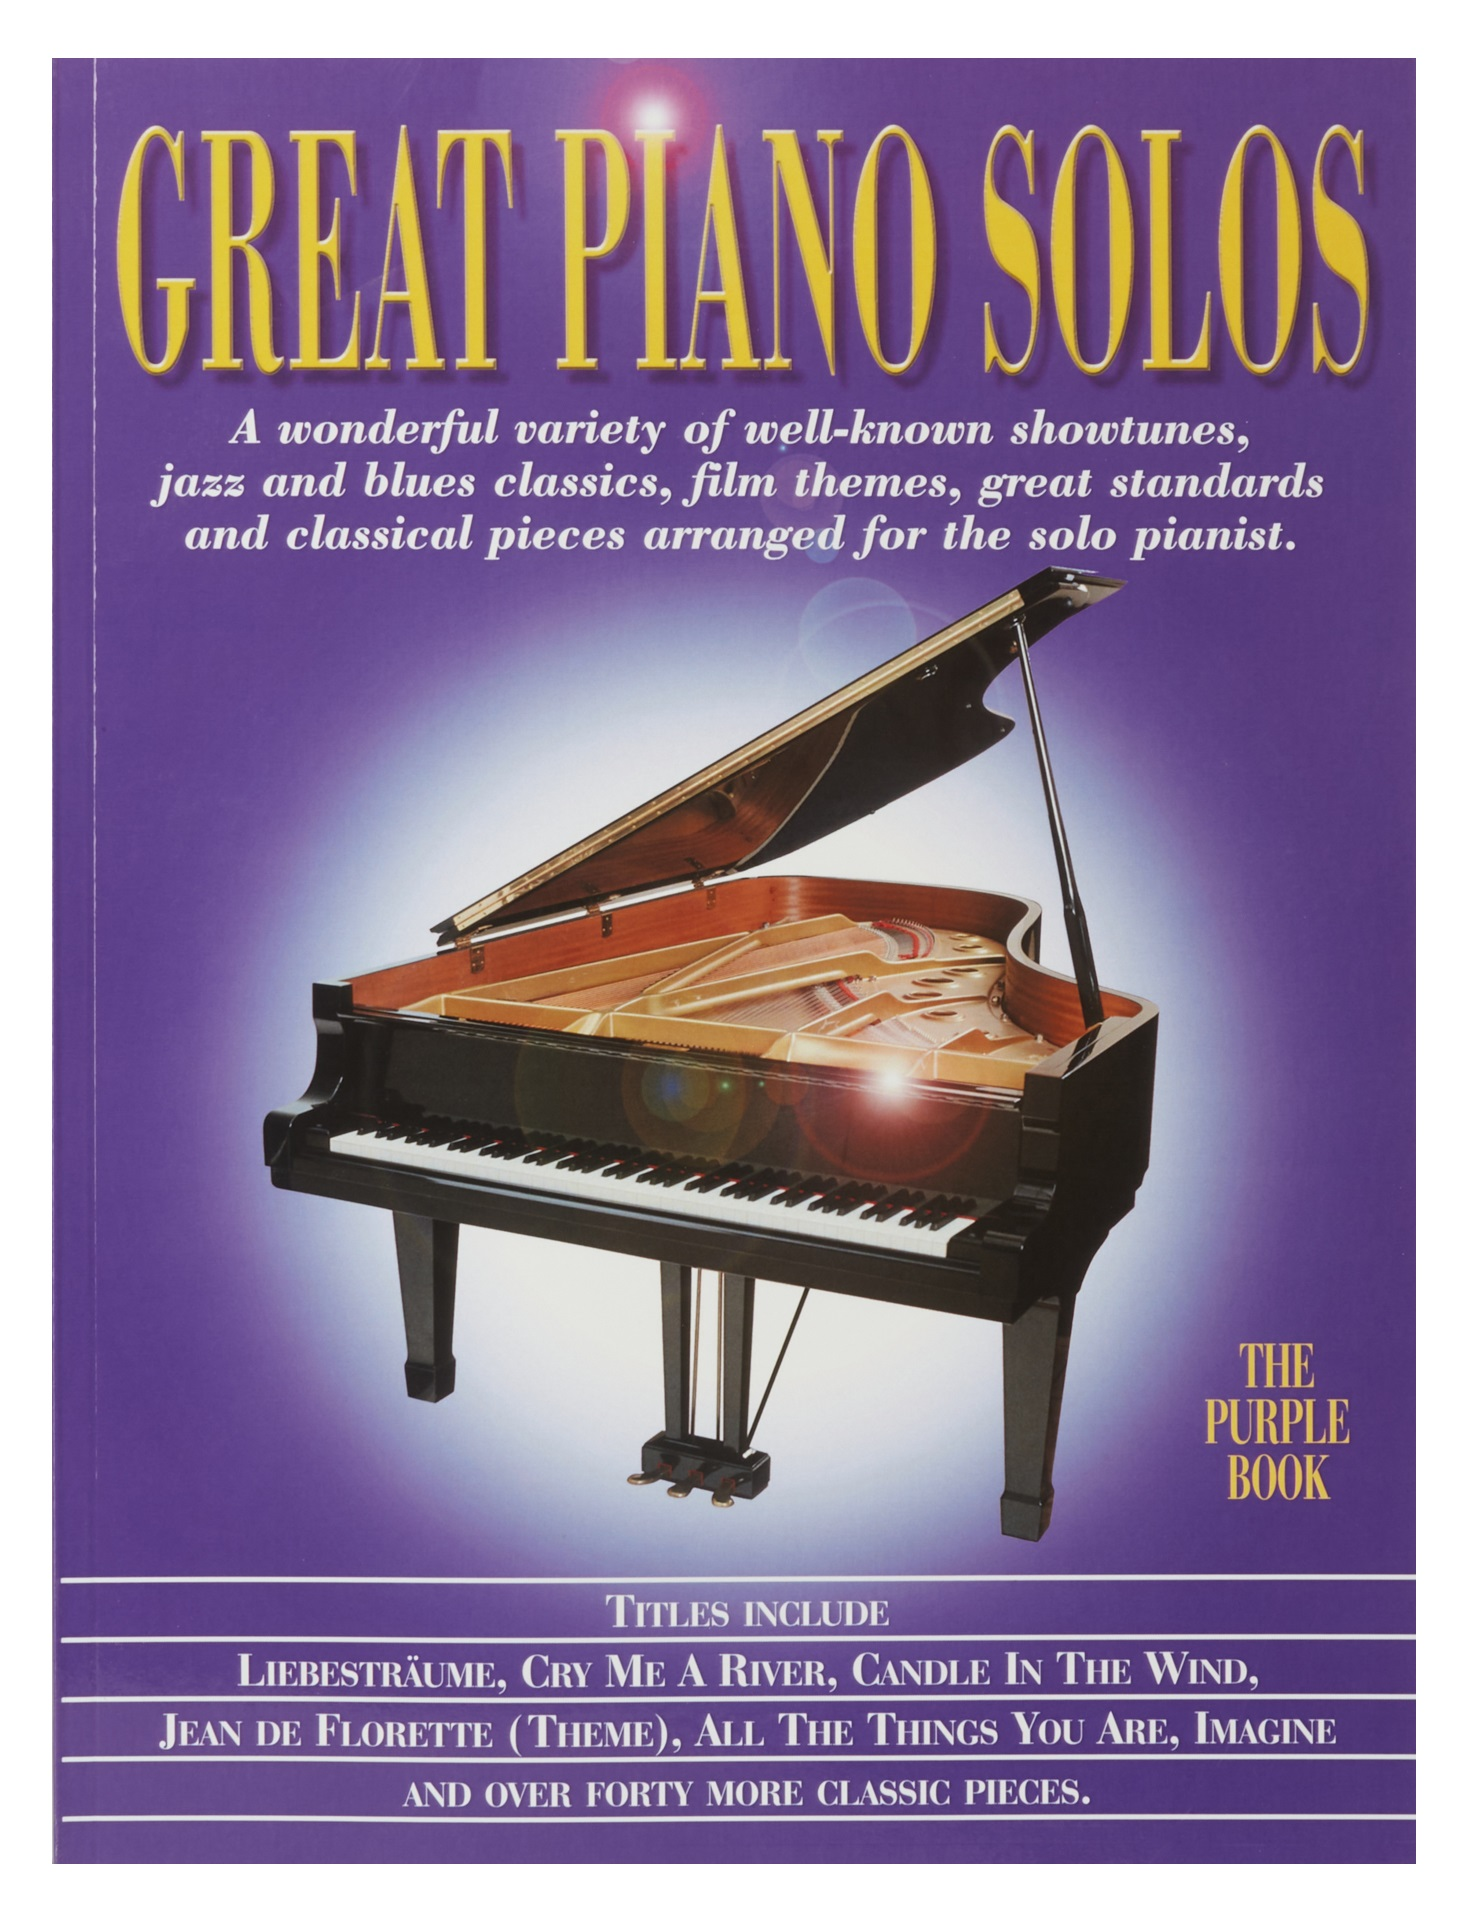 MS Great Piano Solos - The Purple Book (Revised Edition)